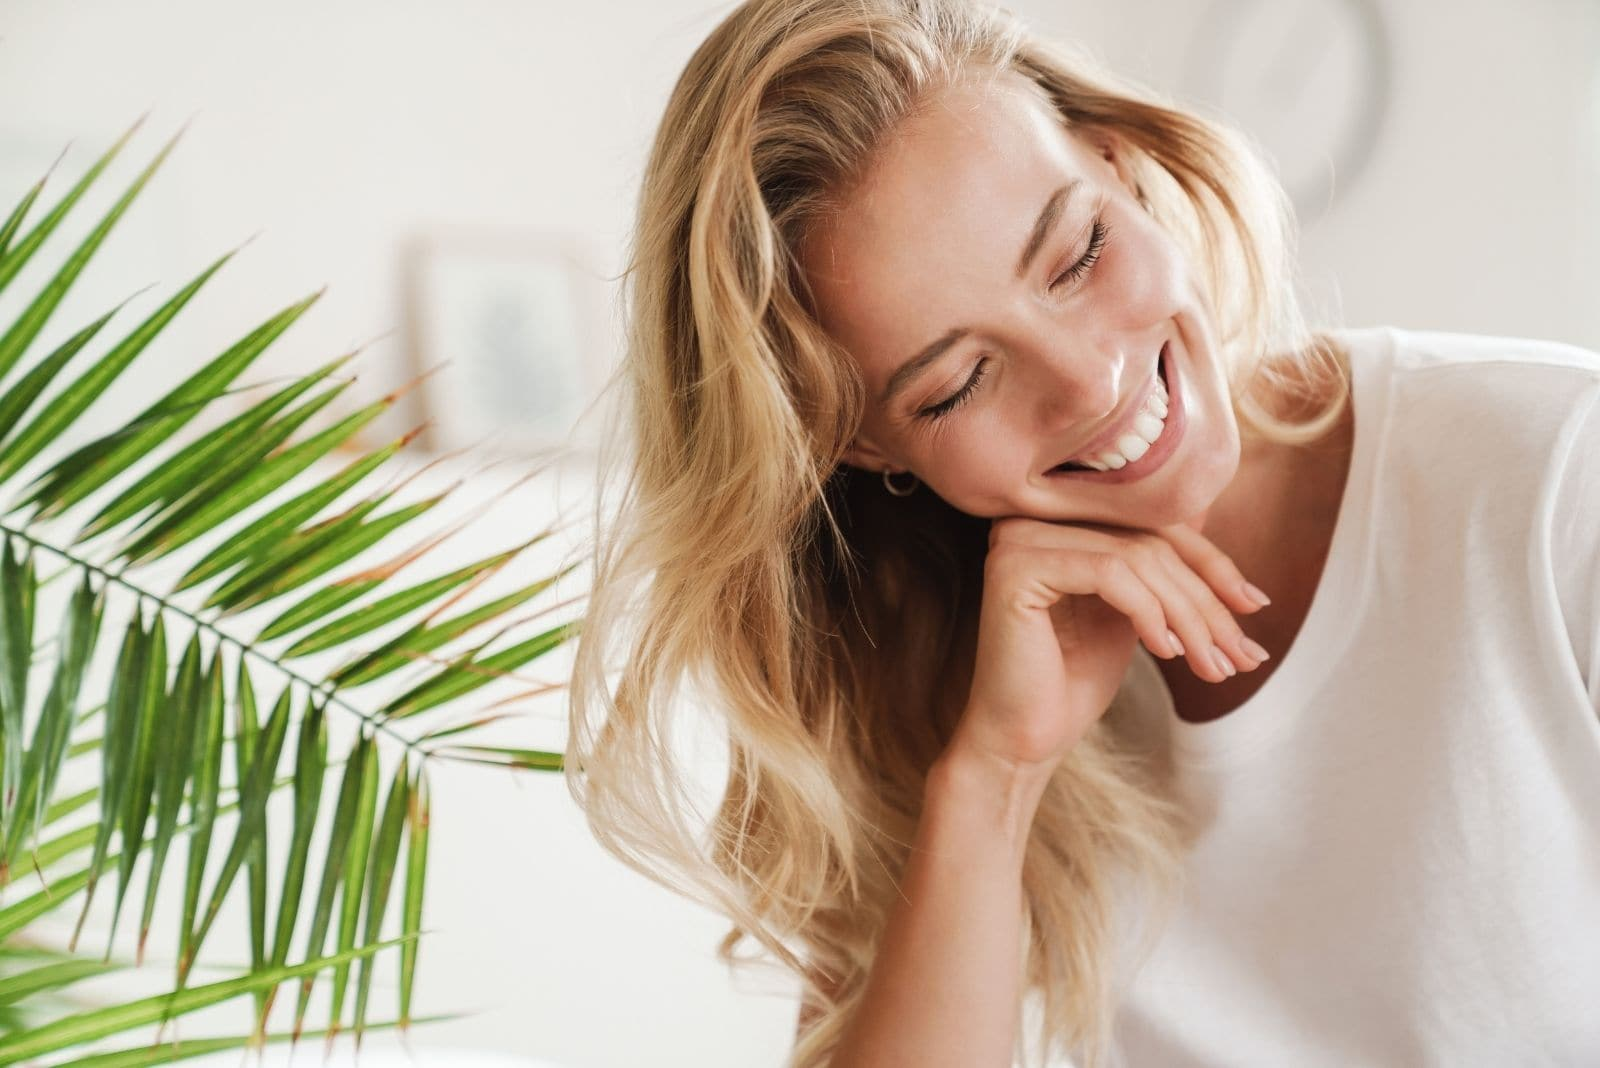 smiling woman closing her eyes sitting inside the living room with plant behind her